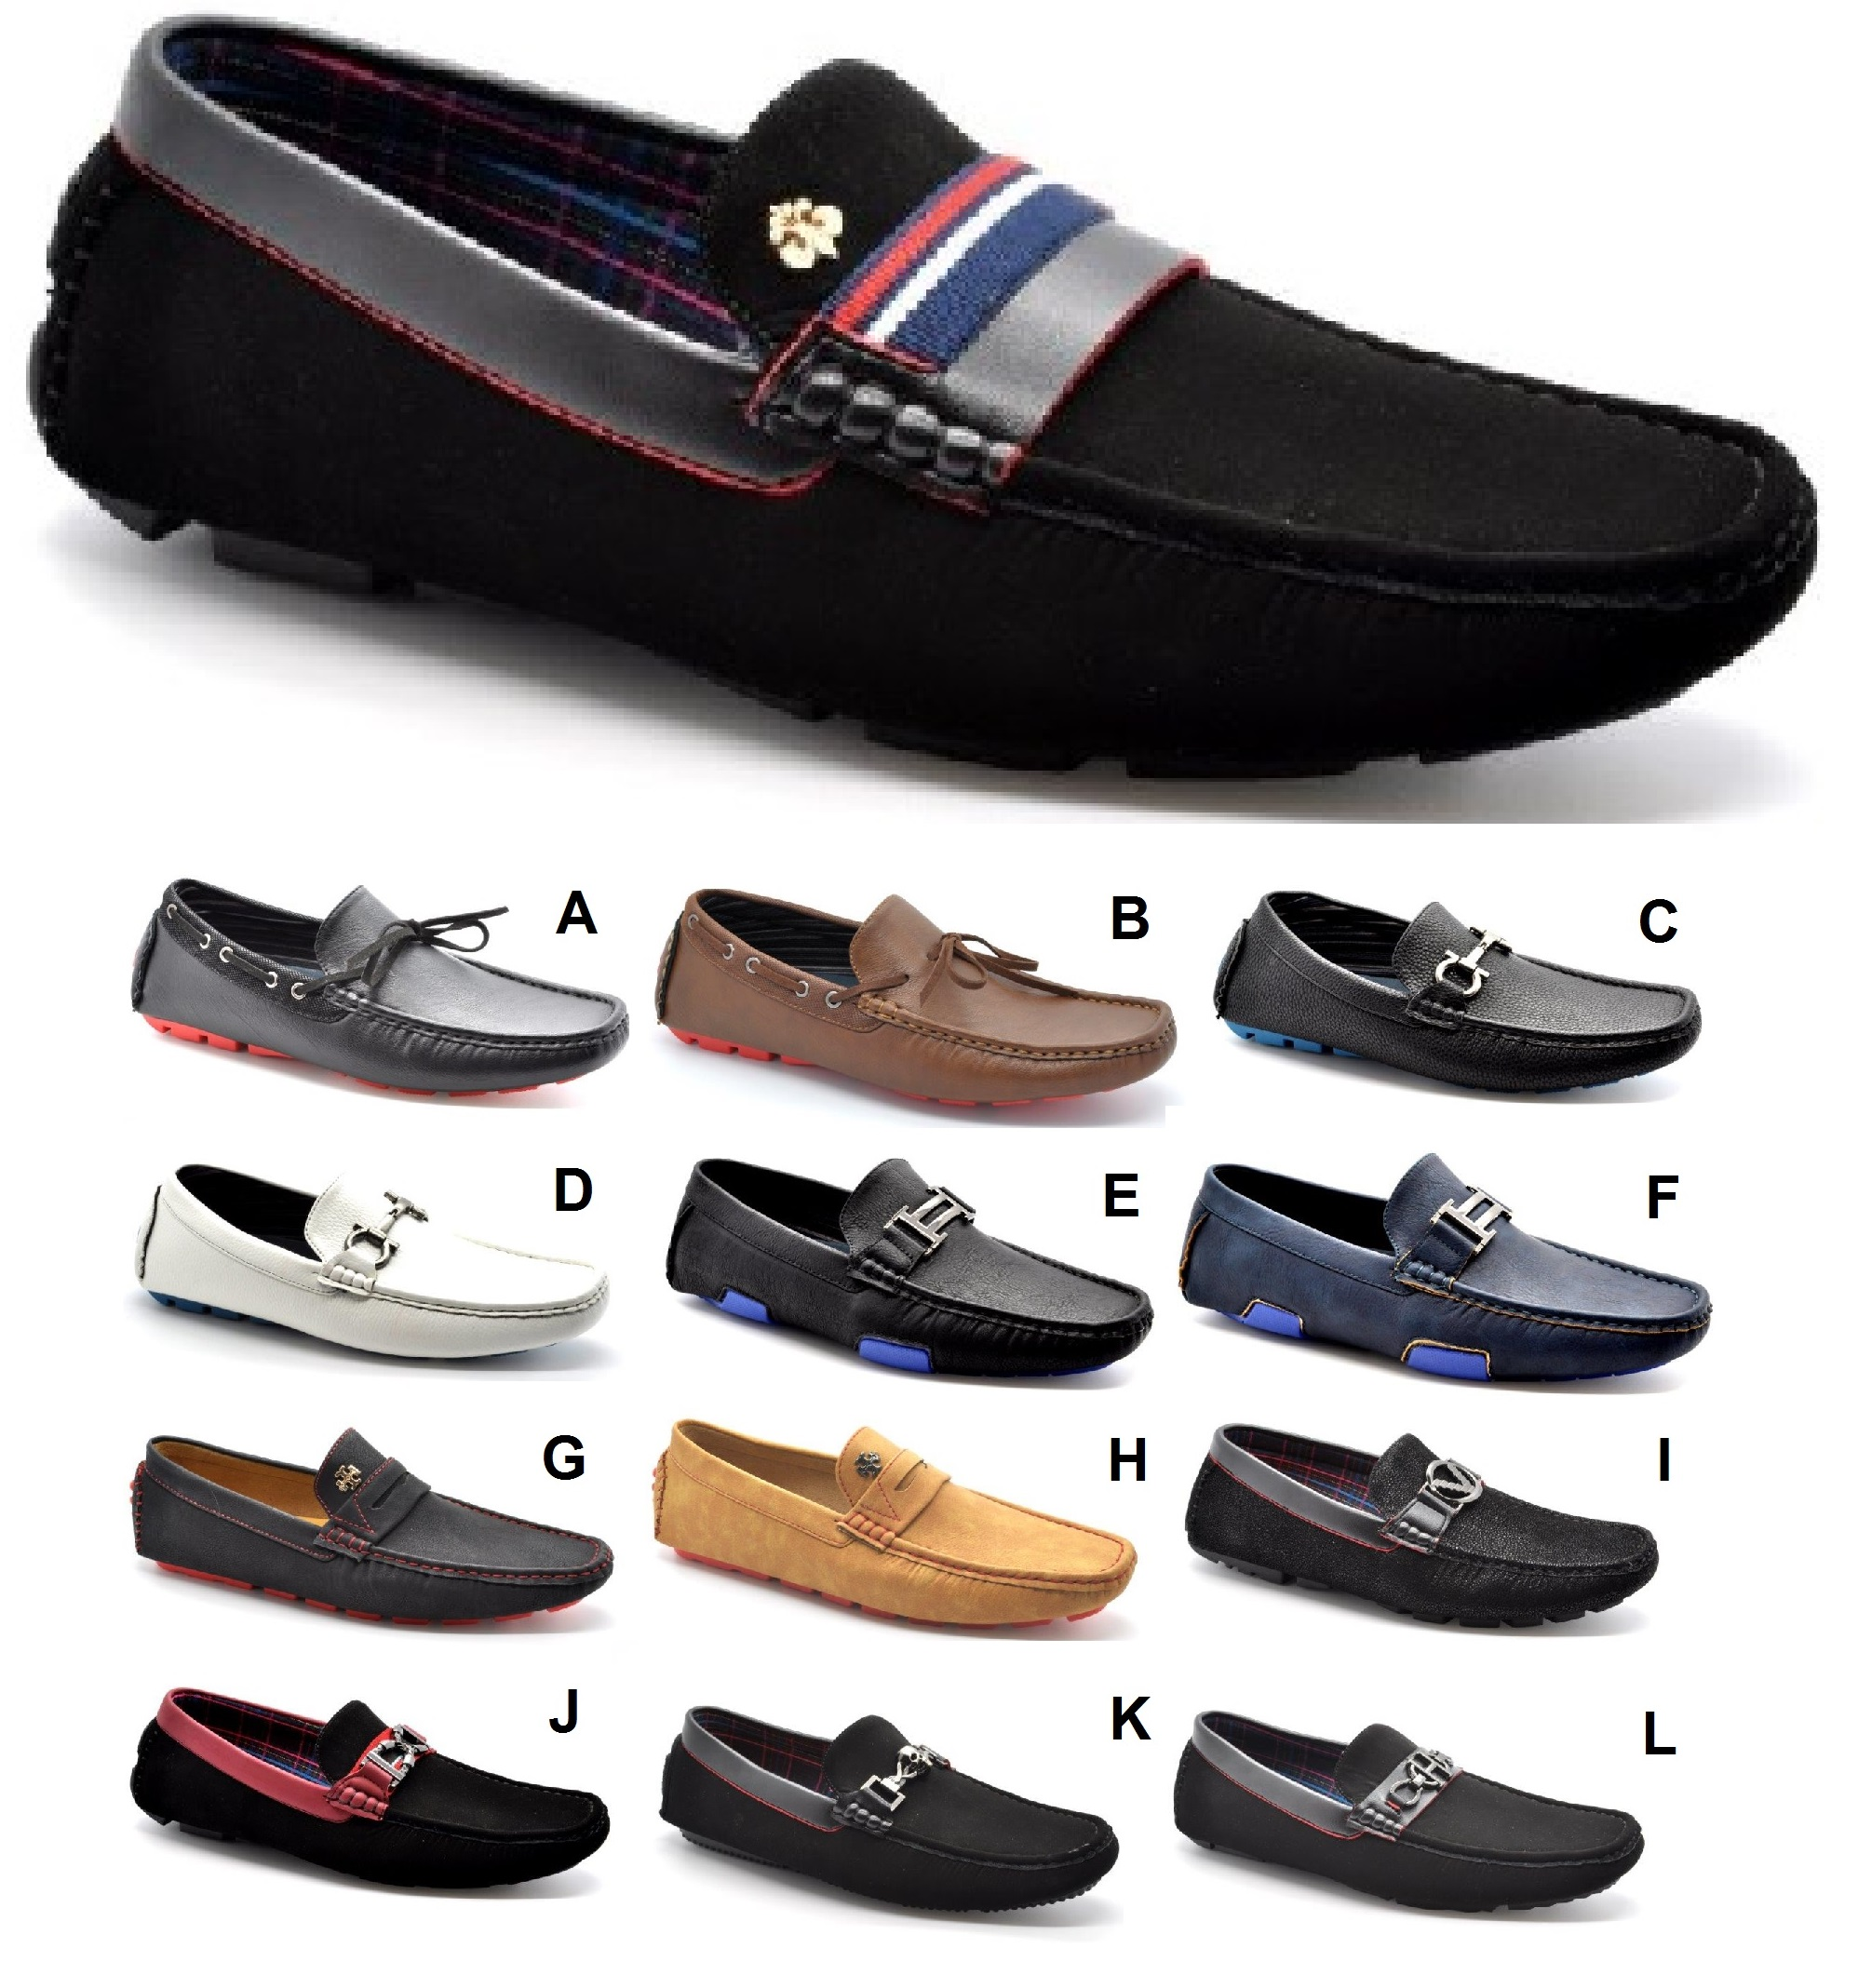 MENS GENTS TASSEL ITALIAN LOAFERS BOYS CAUSAL MOCCASIN BOAT SCHOOL